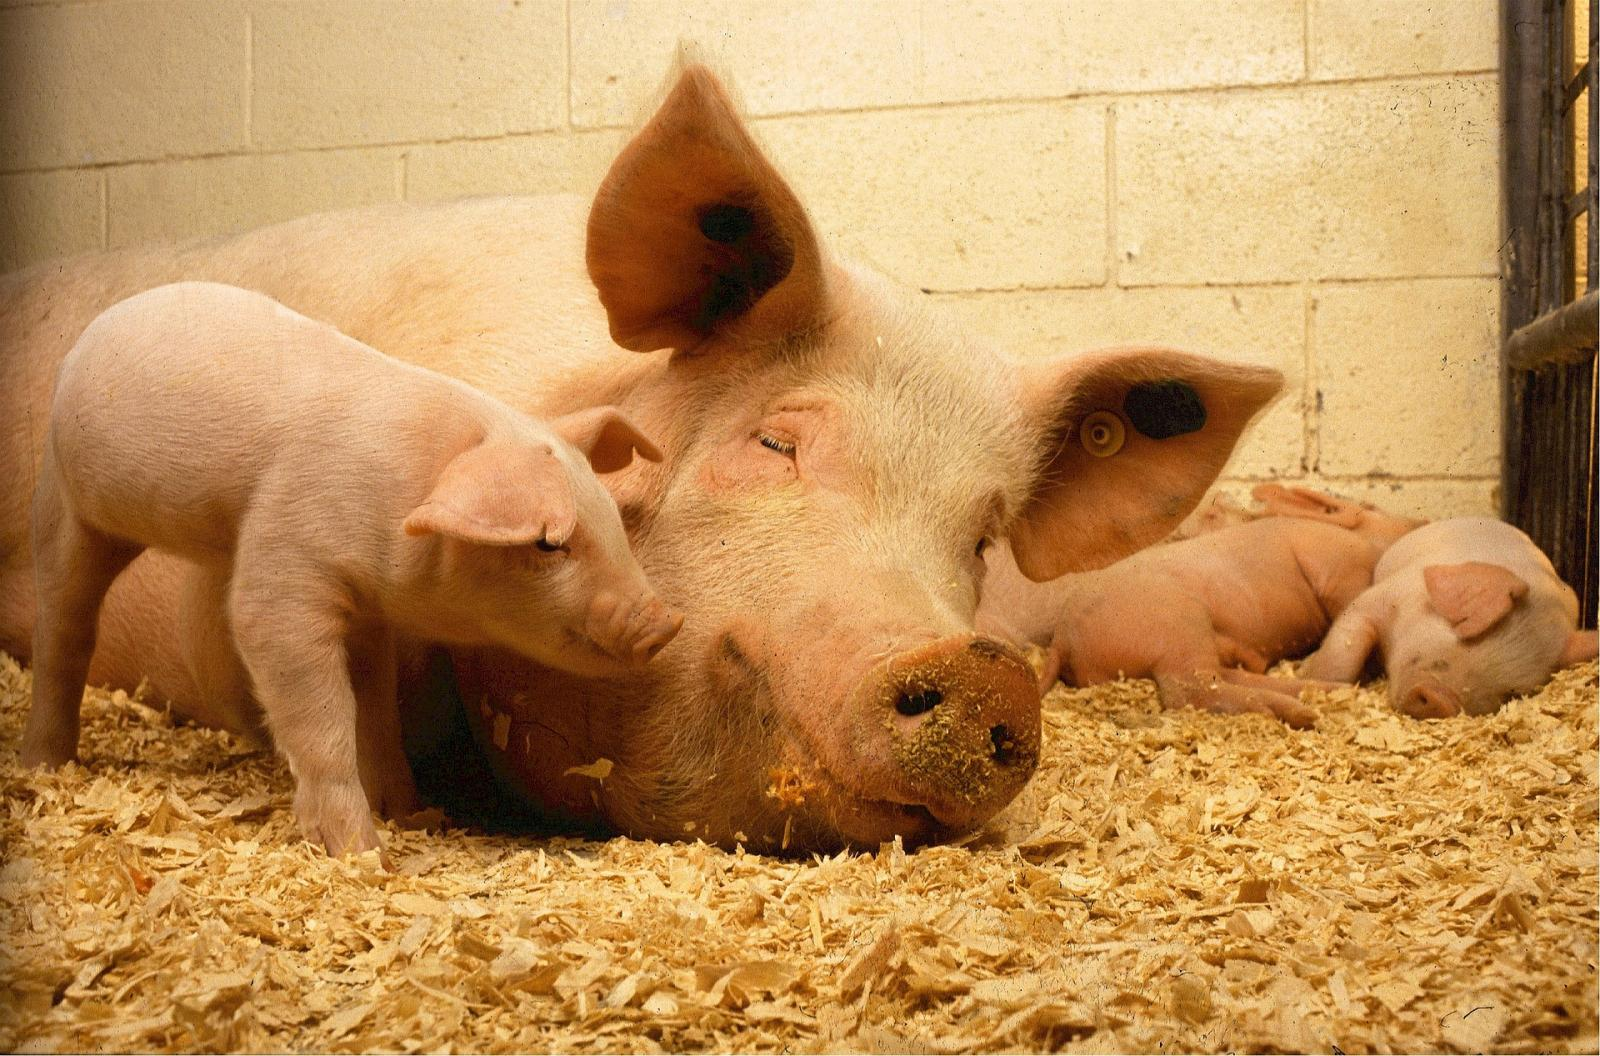 Pigs and piglets. Photo credit: Pixabay